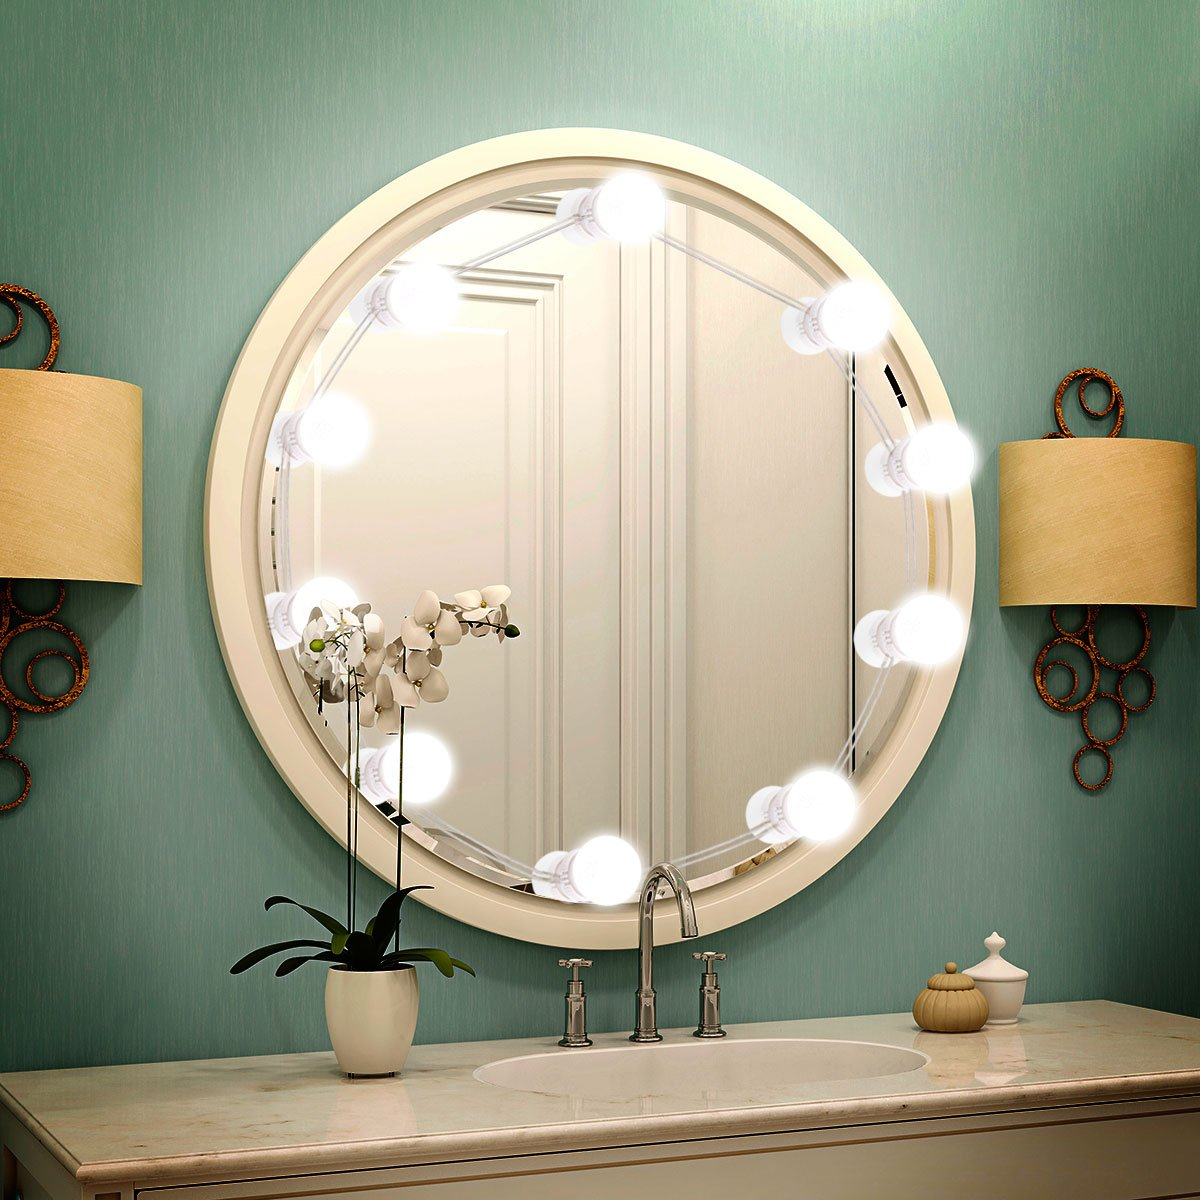 LED Vanity Mirror Lights, Lifelf Makeup Mirror Light Hollywood Style with 10 Dimmable LED Bulbs Kit with USB Powered for Makeup Table Set in Bathroom, Dressing Room,Bedroom-White (not Include Mirror)